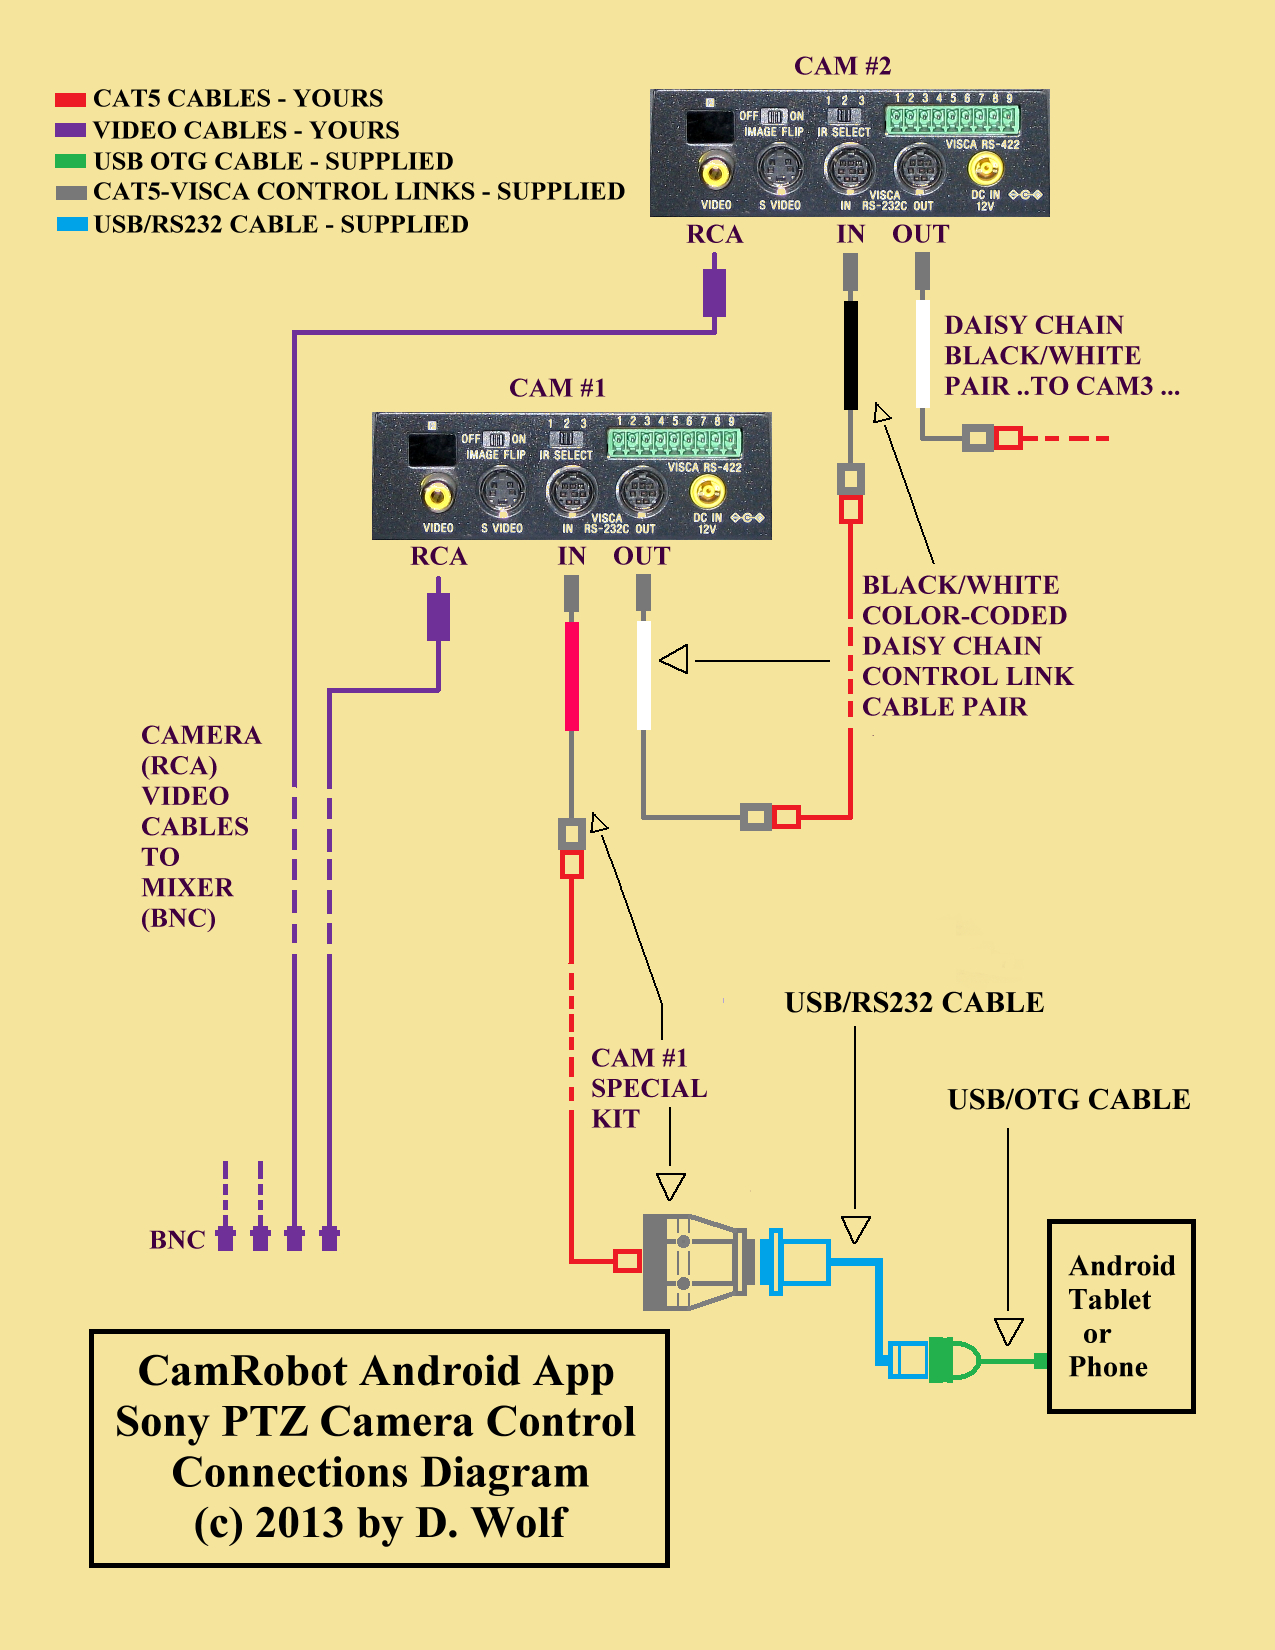 Db25 To Usb Cable Schematic | Manual E-Books - Usb Wiring Diagram Manual